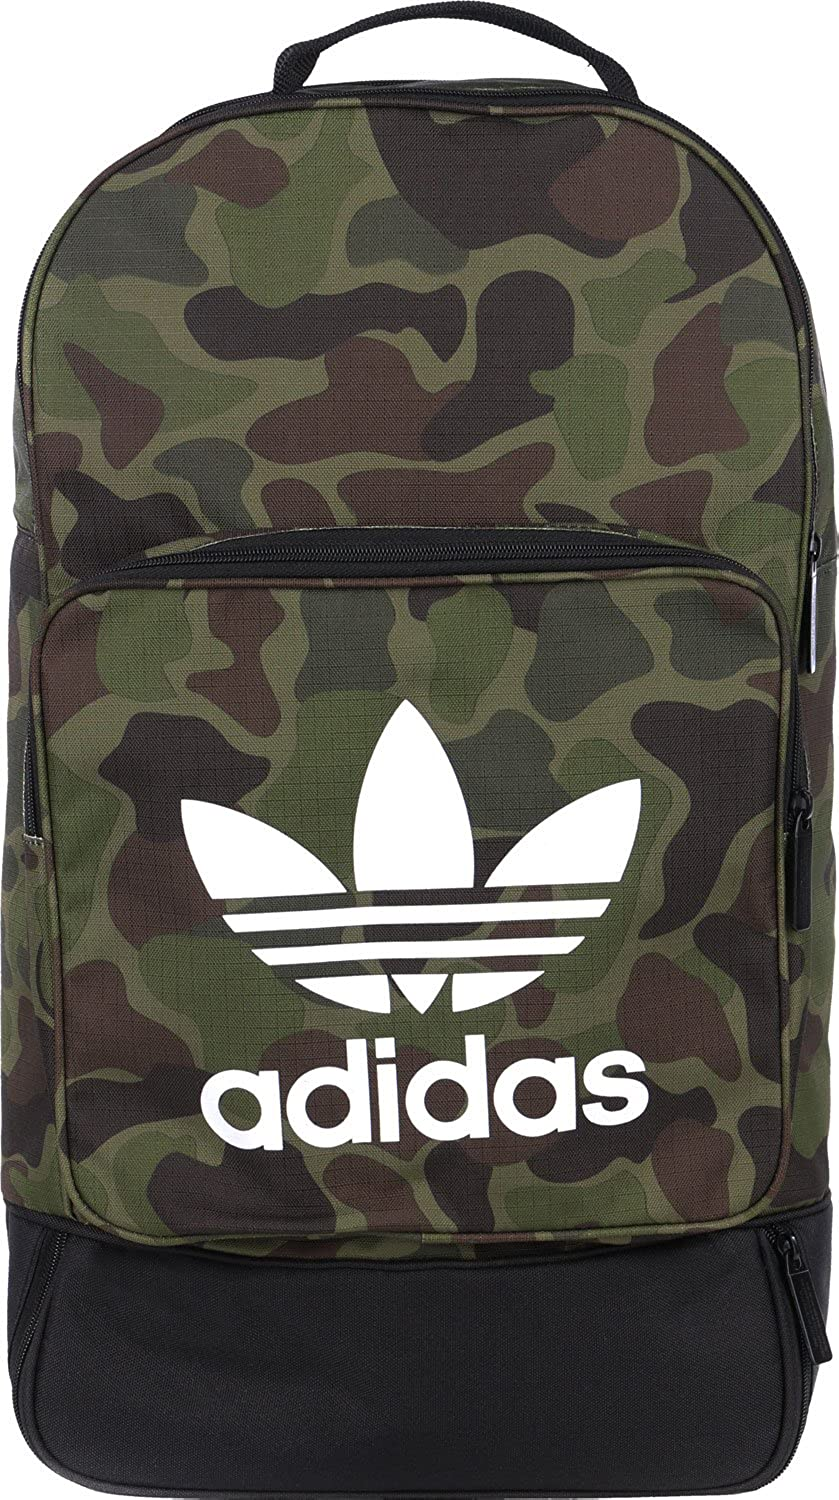 Adidas Originals Street Camouflage Backpack Rucksack camouflage